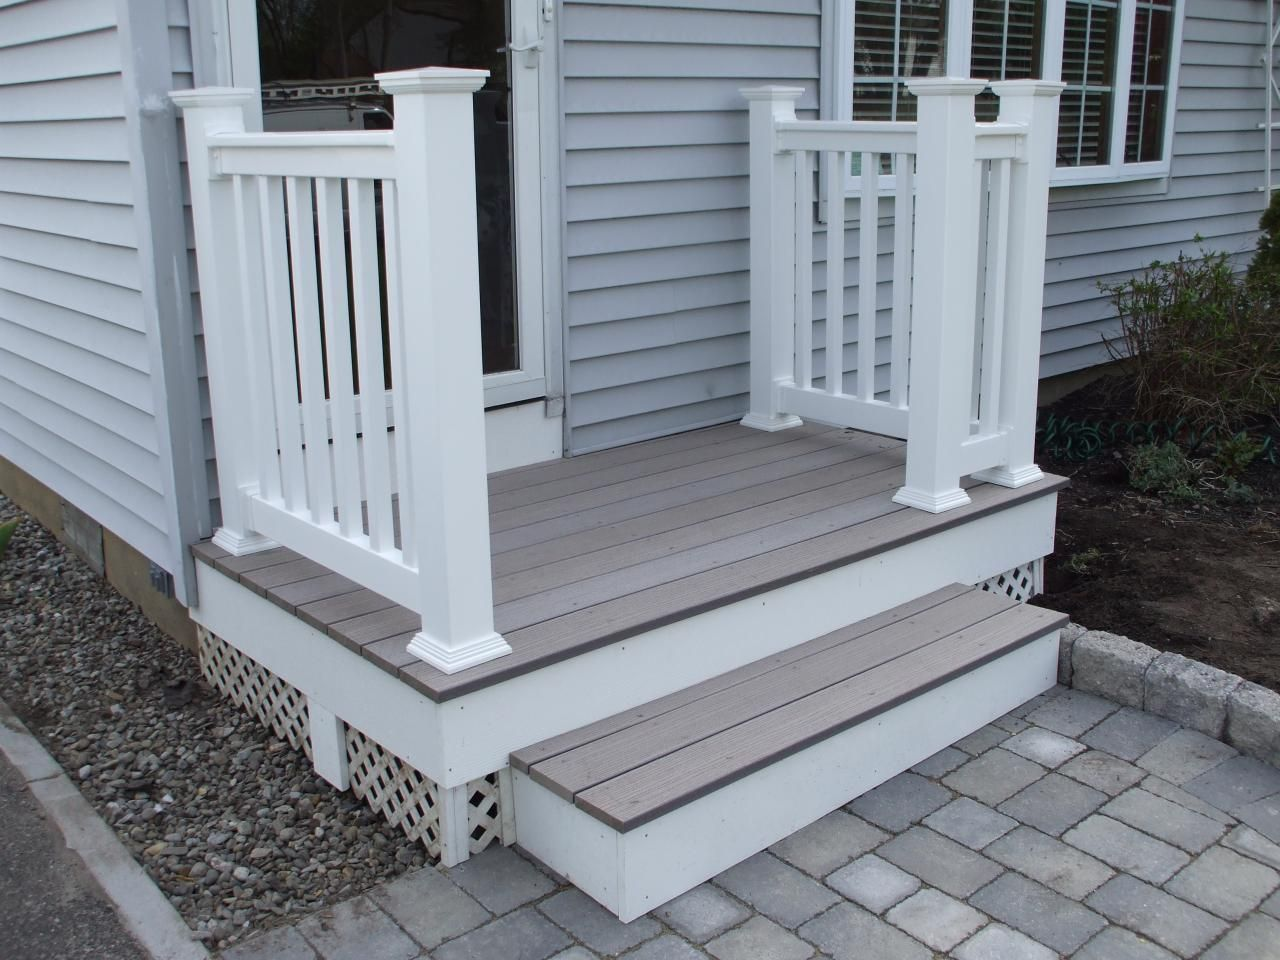 Small Deck Ideas Decorating Porch Design On A Budget Space Saving Diy Backyard Apartment W Front Porch Steps Small Front Porches Designs Concrete Front Porch